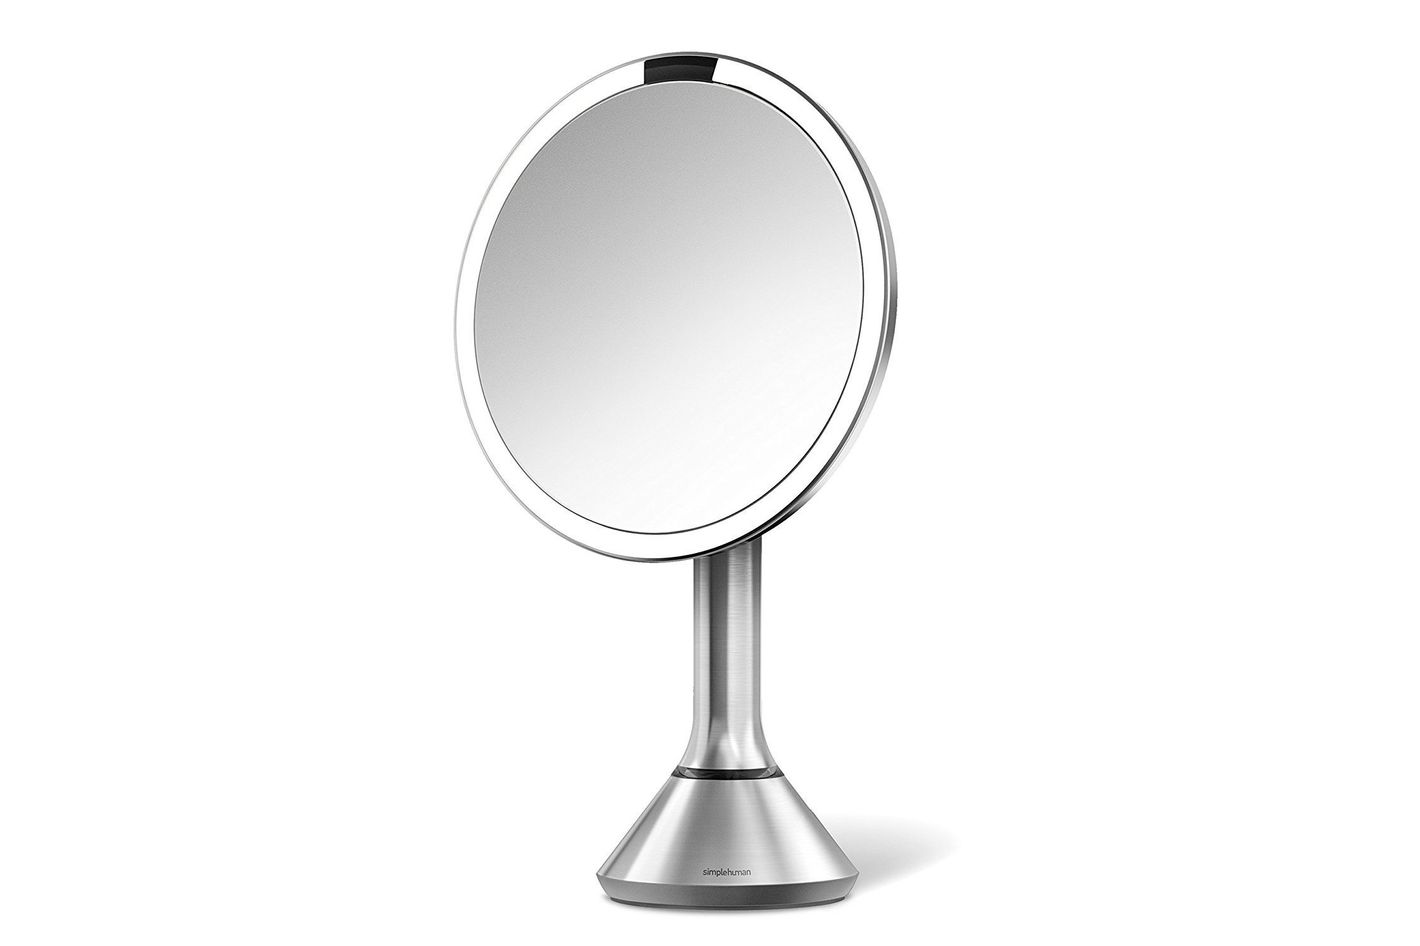 led makeup mirror. \u201cthis sleekly designed lighted makeup/vanity mirror was a gift for my wife, and she truly loves this product. i chose over many others despite led makeup